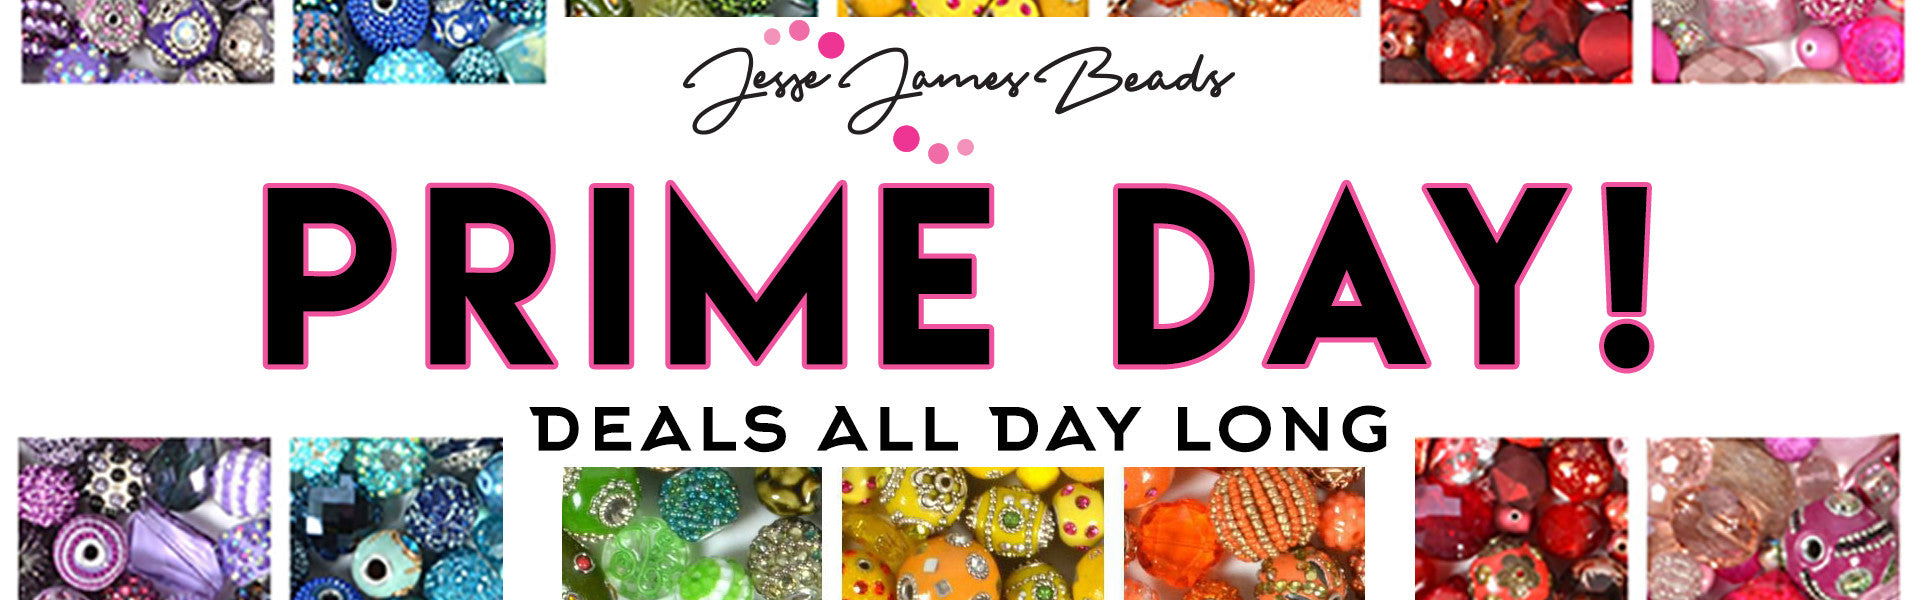 JJB PRIME DAY! A Day Full of Deals